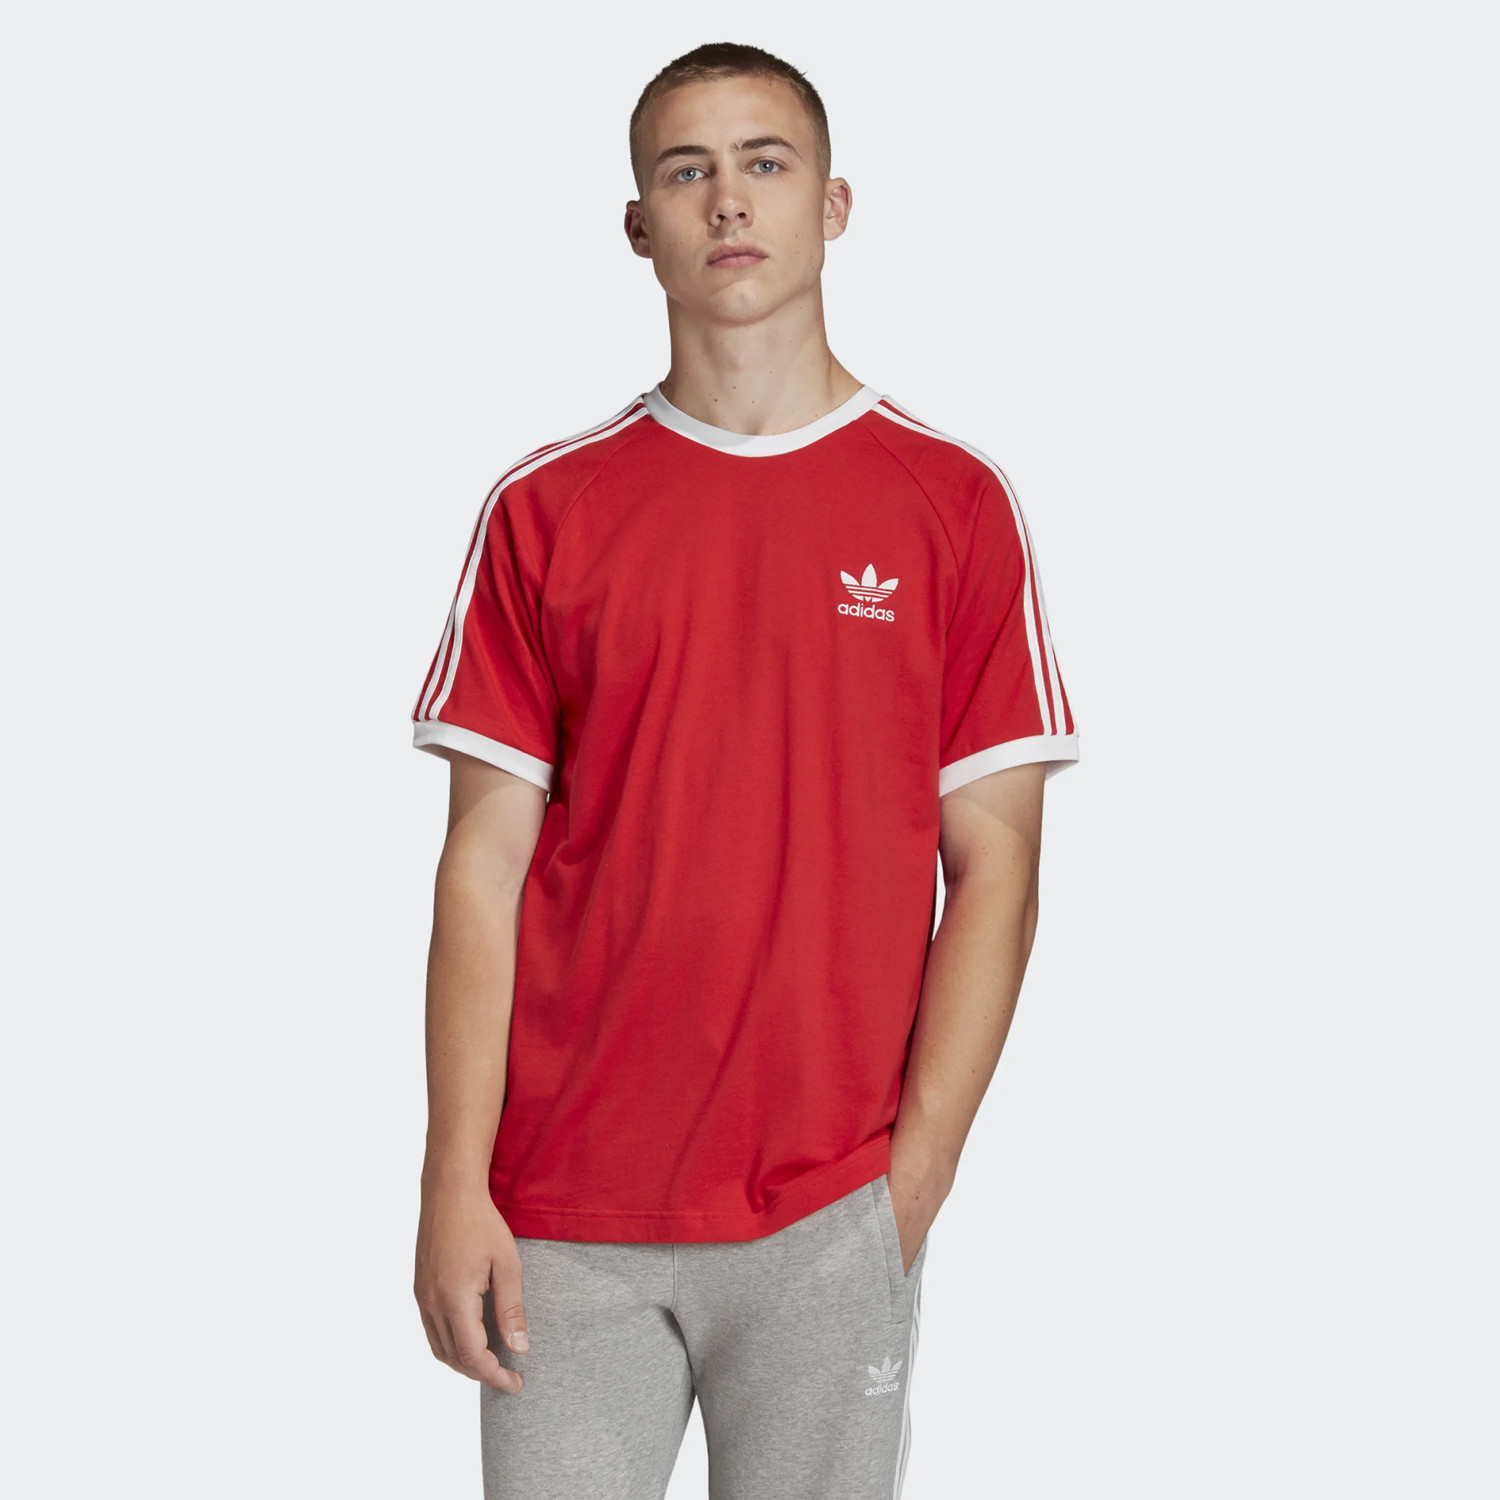 adidas Original 3-Stripes Men's Tee (9000045550_18021)